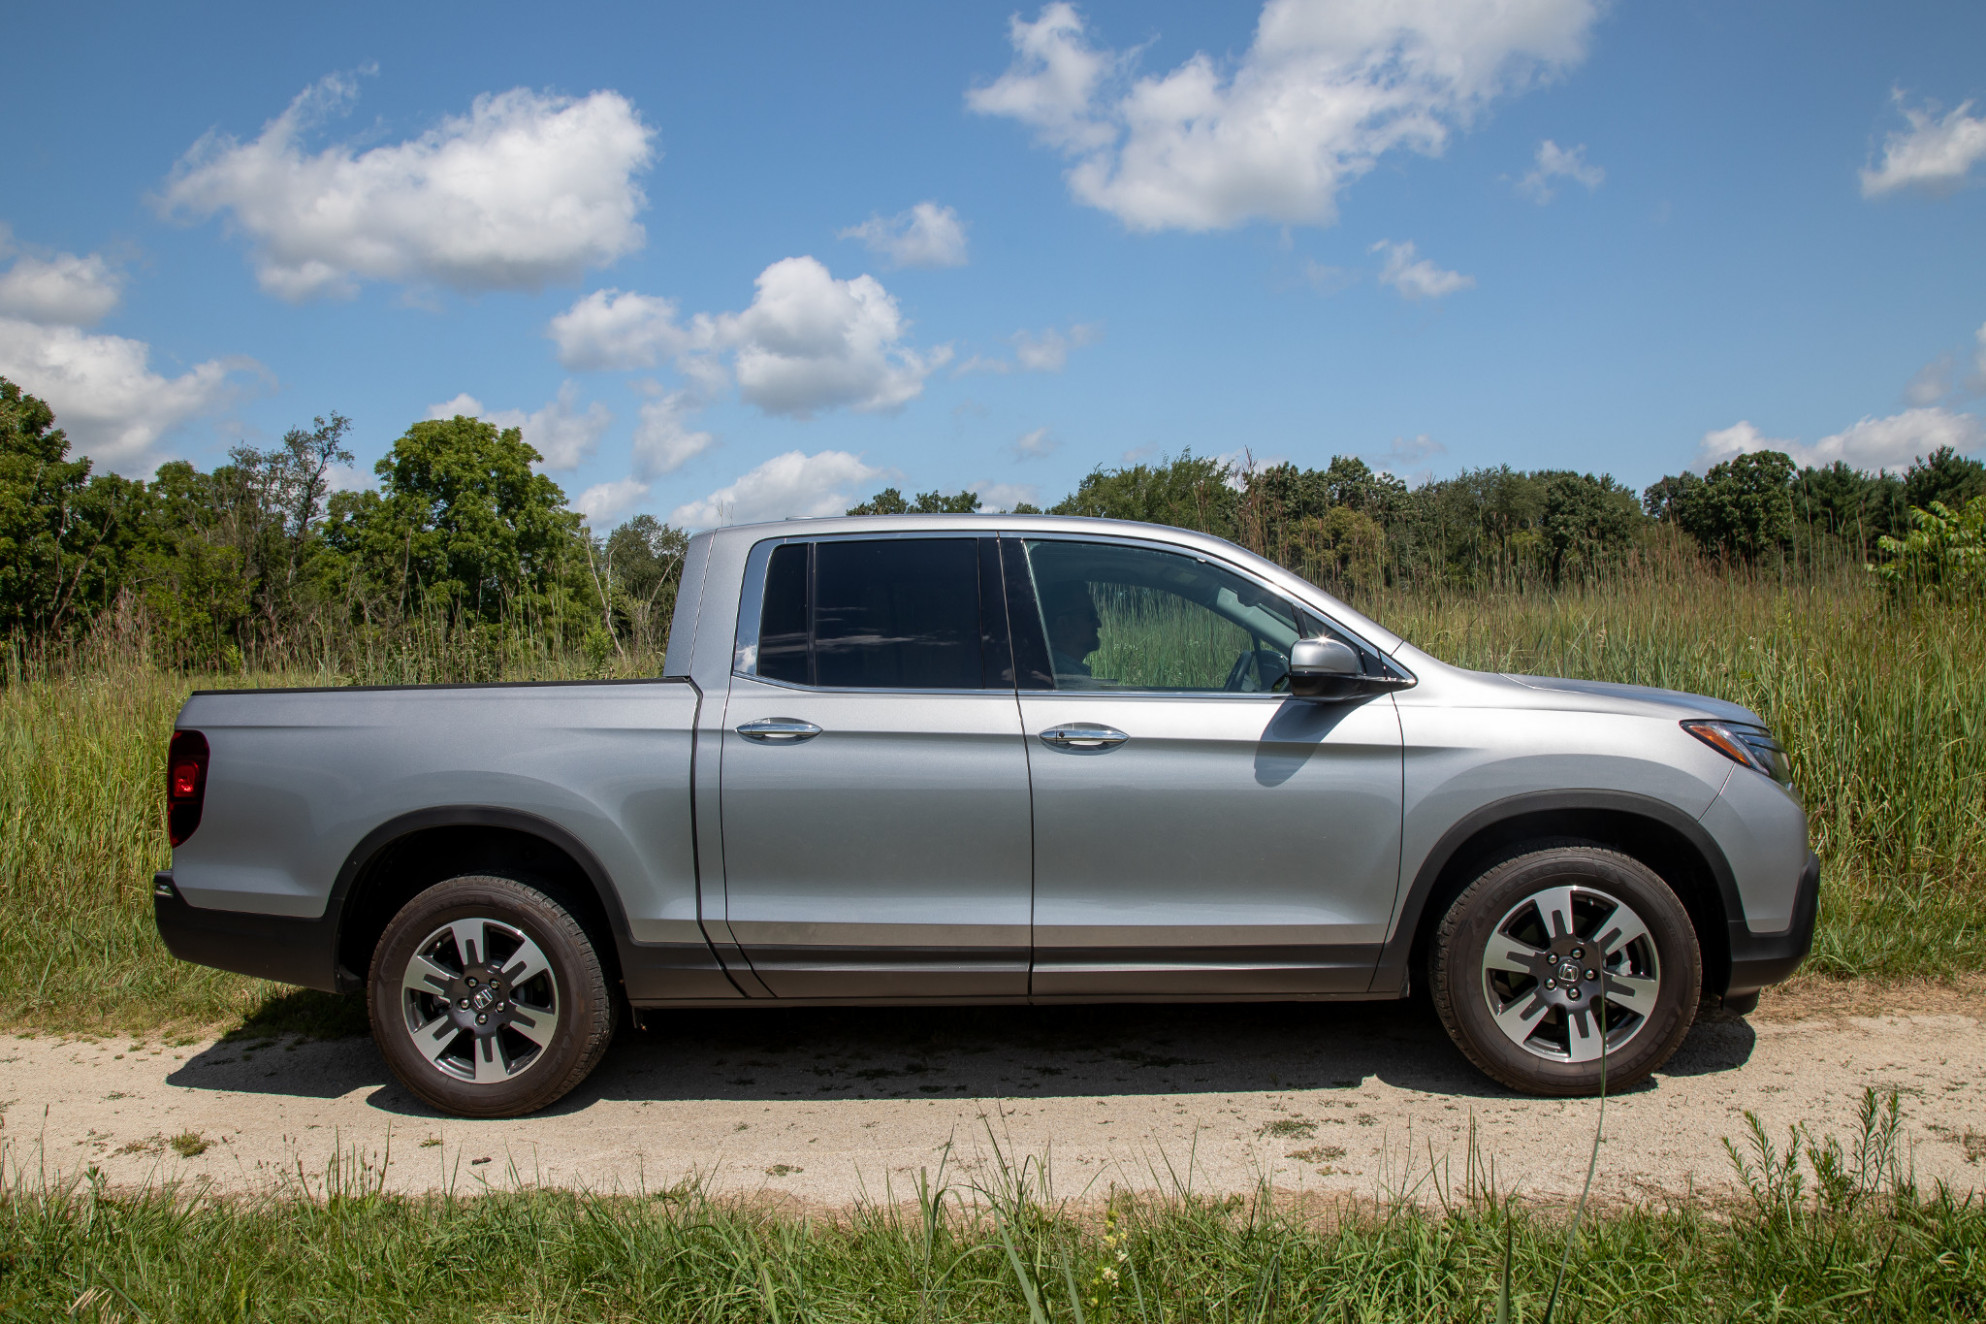 7 Honda Ridgeline: Which Should You Buy, 7 or 7? | News ...